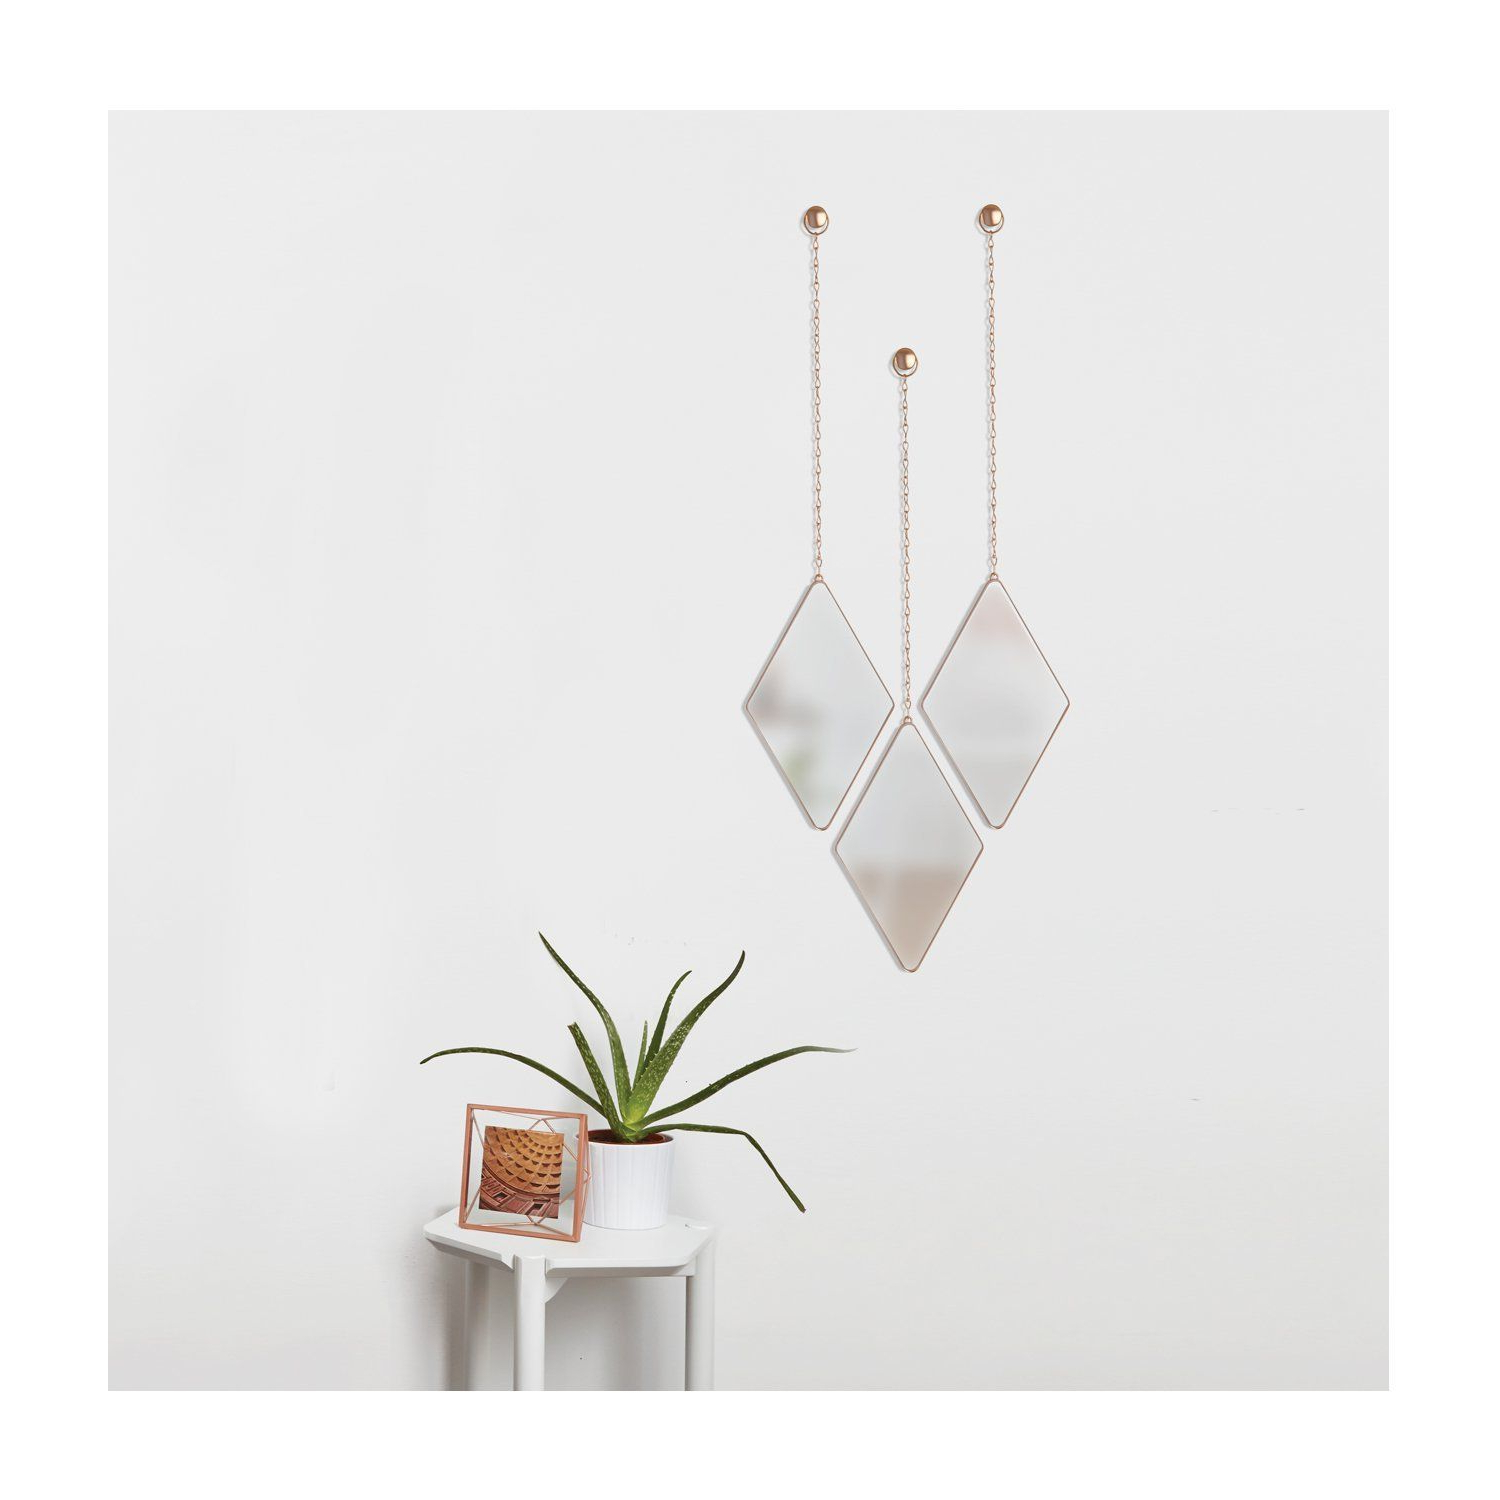 Newest 3 Piece Dima Hanging Modern & Contemporary Mirror Sets Pertaining To Amazon: Umbra Dima Mirrors (Set Of 3), Copper: Home & Kitchen (Gallery 9 of 20)